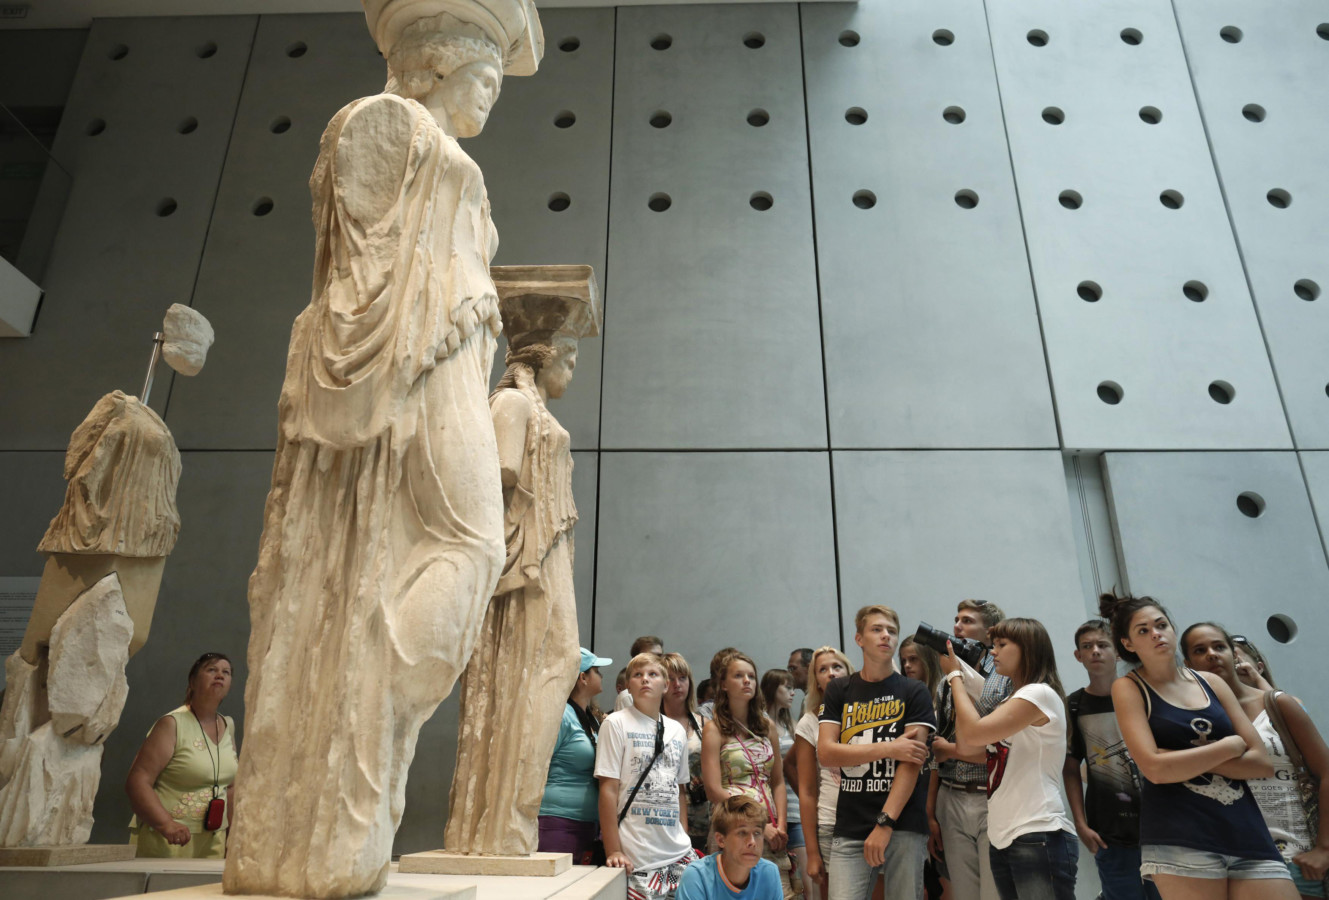 File photo shows tourists standing behind Karyatids statues at the Athens Acropolis Museum